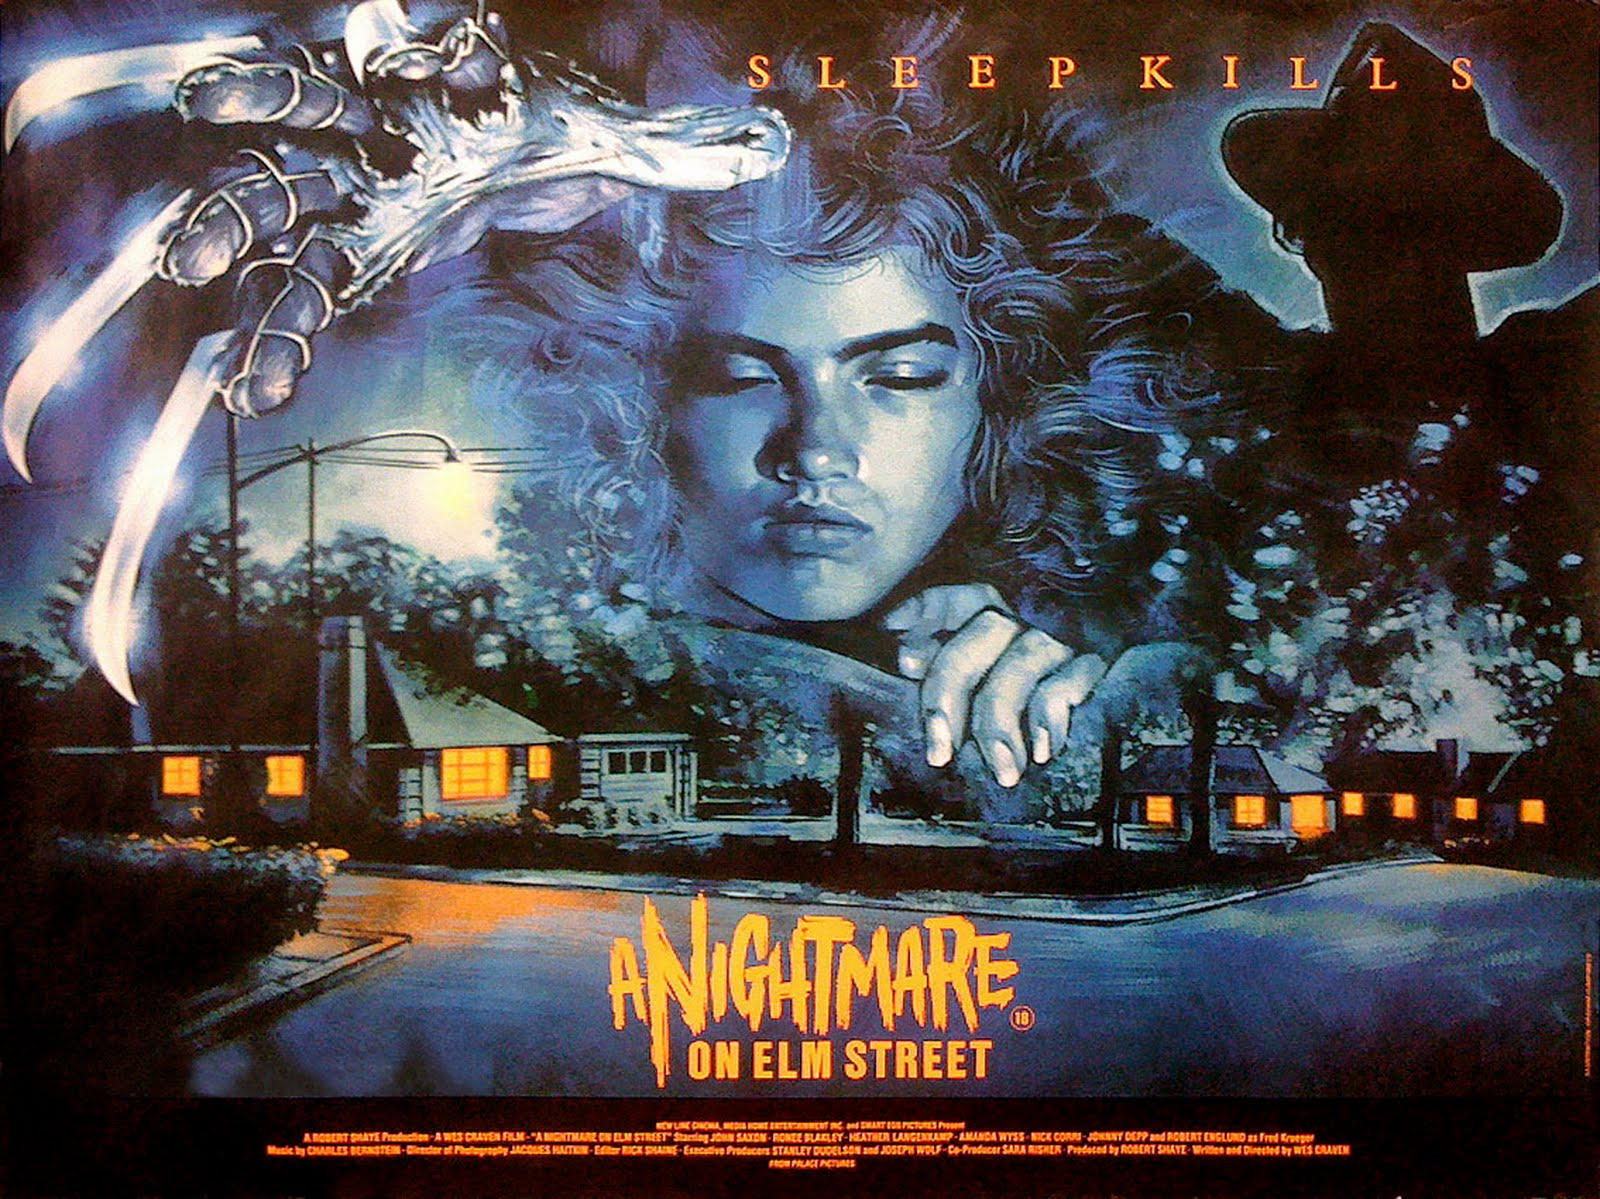 a-nightmare-on-elm-street-wallpapers-for-windows-7.jpg